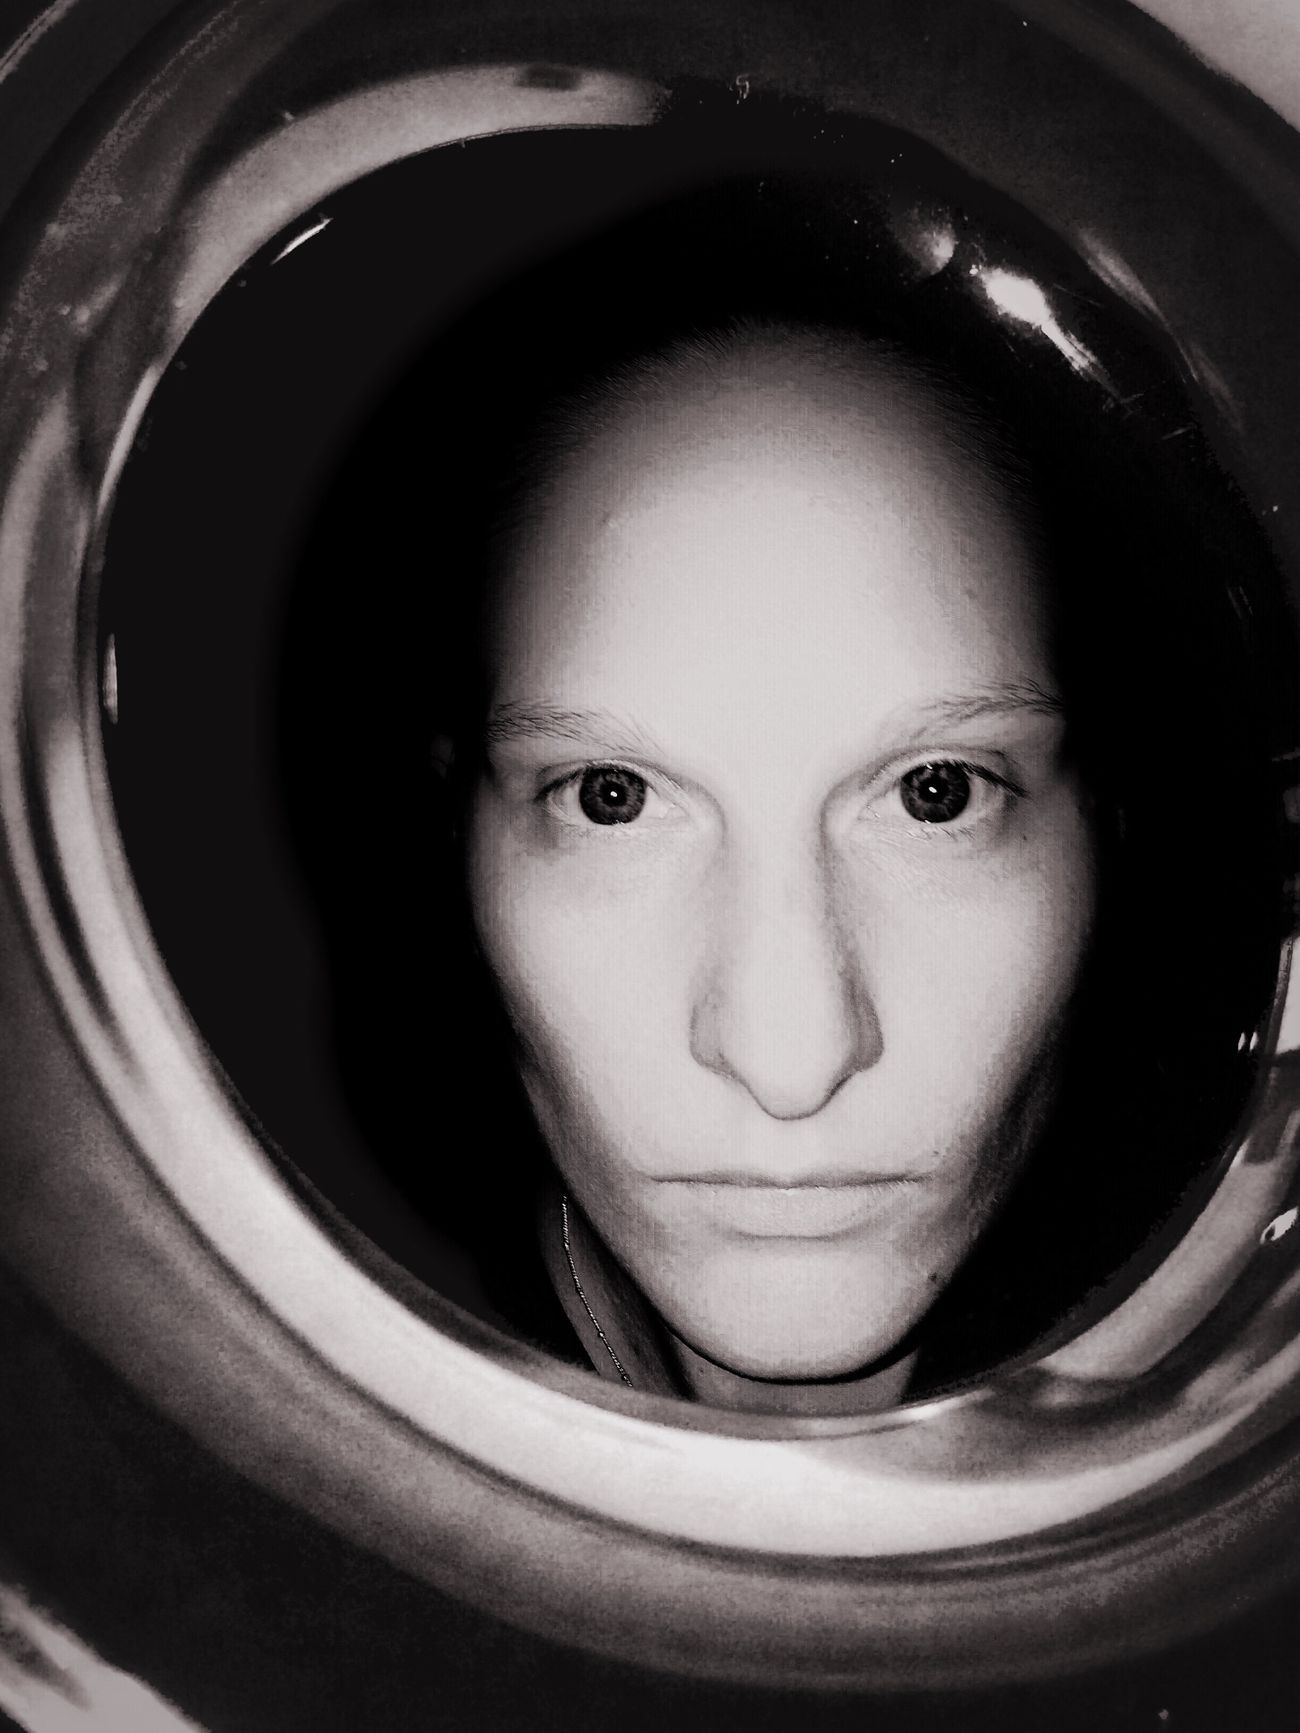 Self Portrait Portrait Female Iphonography Iphoneonly Blackandwhite Future Face Alien Direct View Different Newstyle The Potraitist - 2016 EyeEm Awards